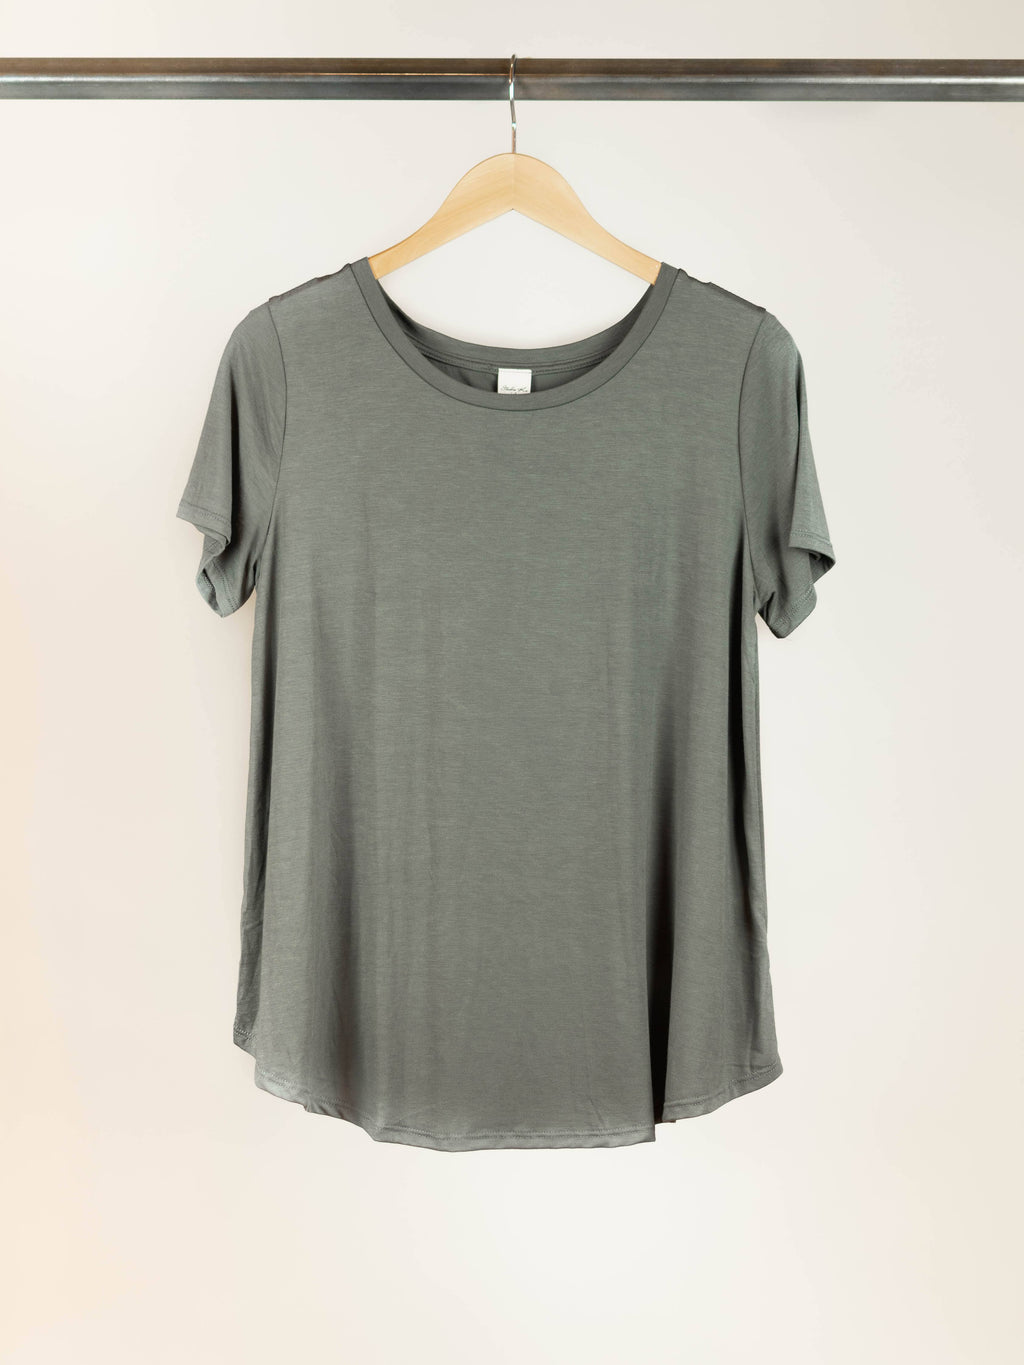 Bamboo Basic Tee - Dull Grey